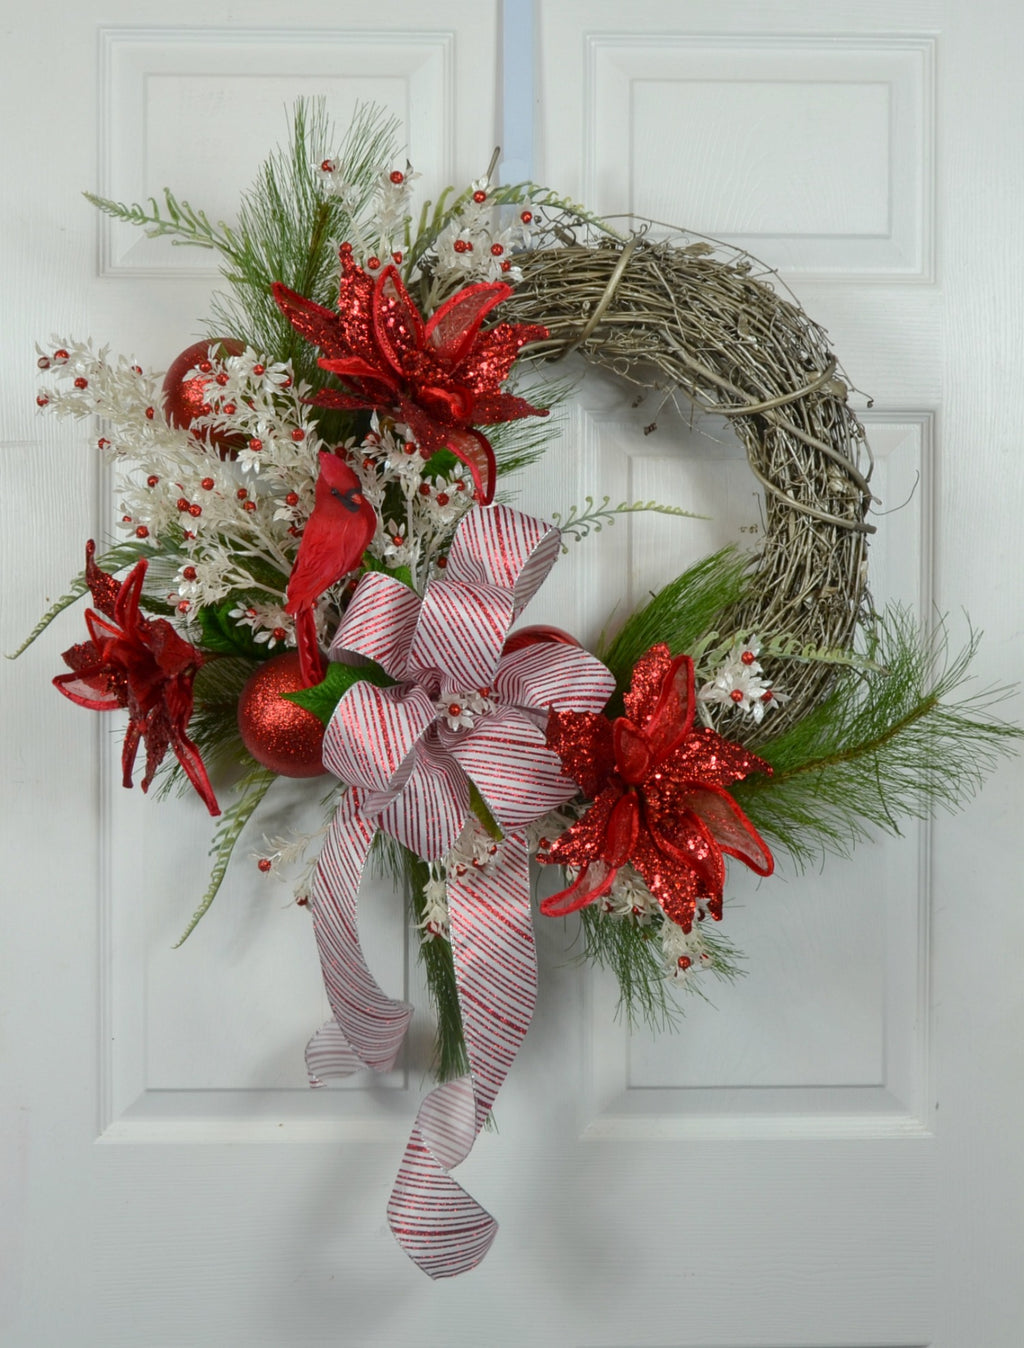 Red and White Poinsettia Christmas Door Wreath